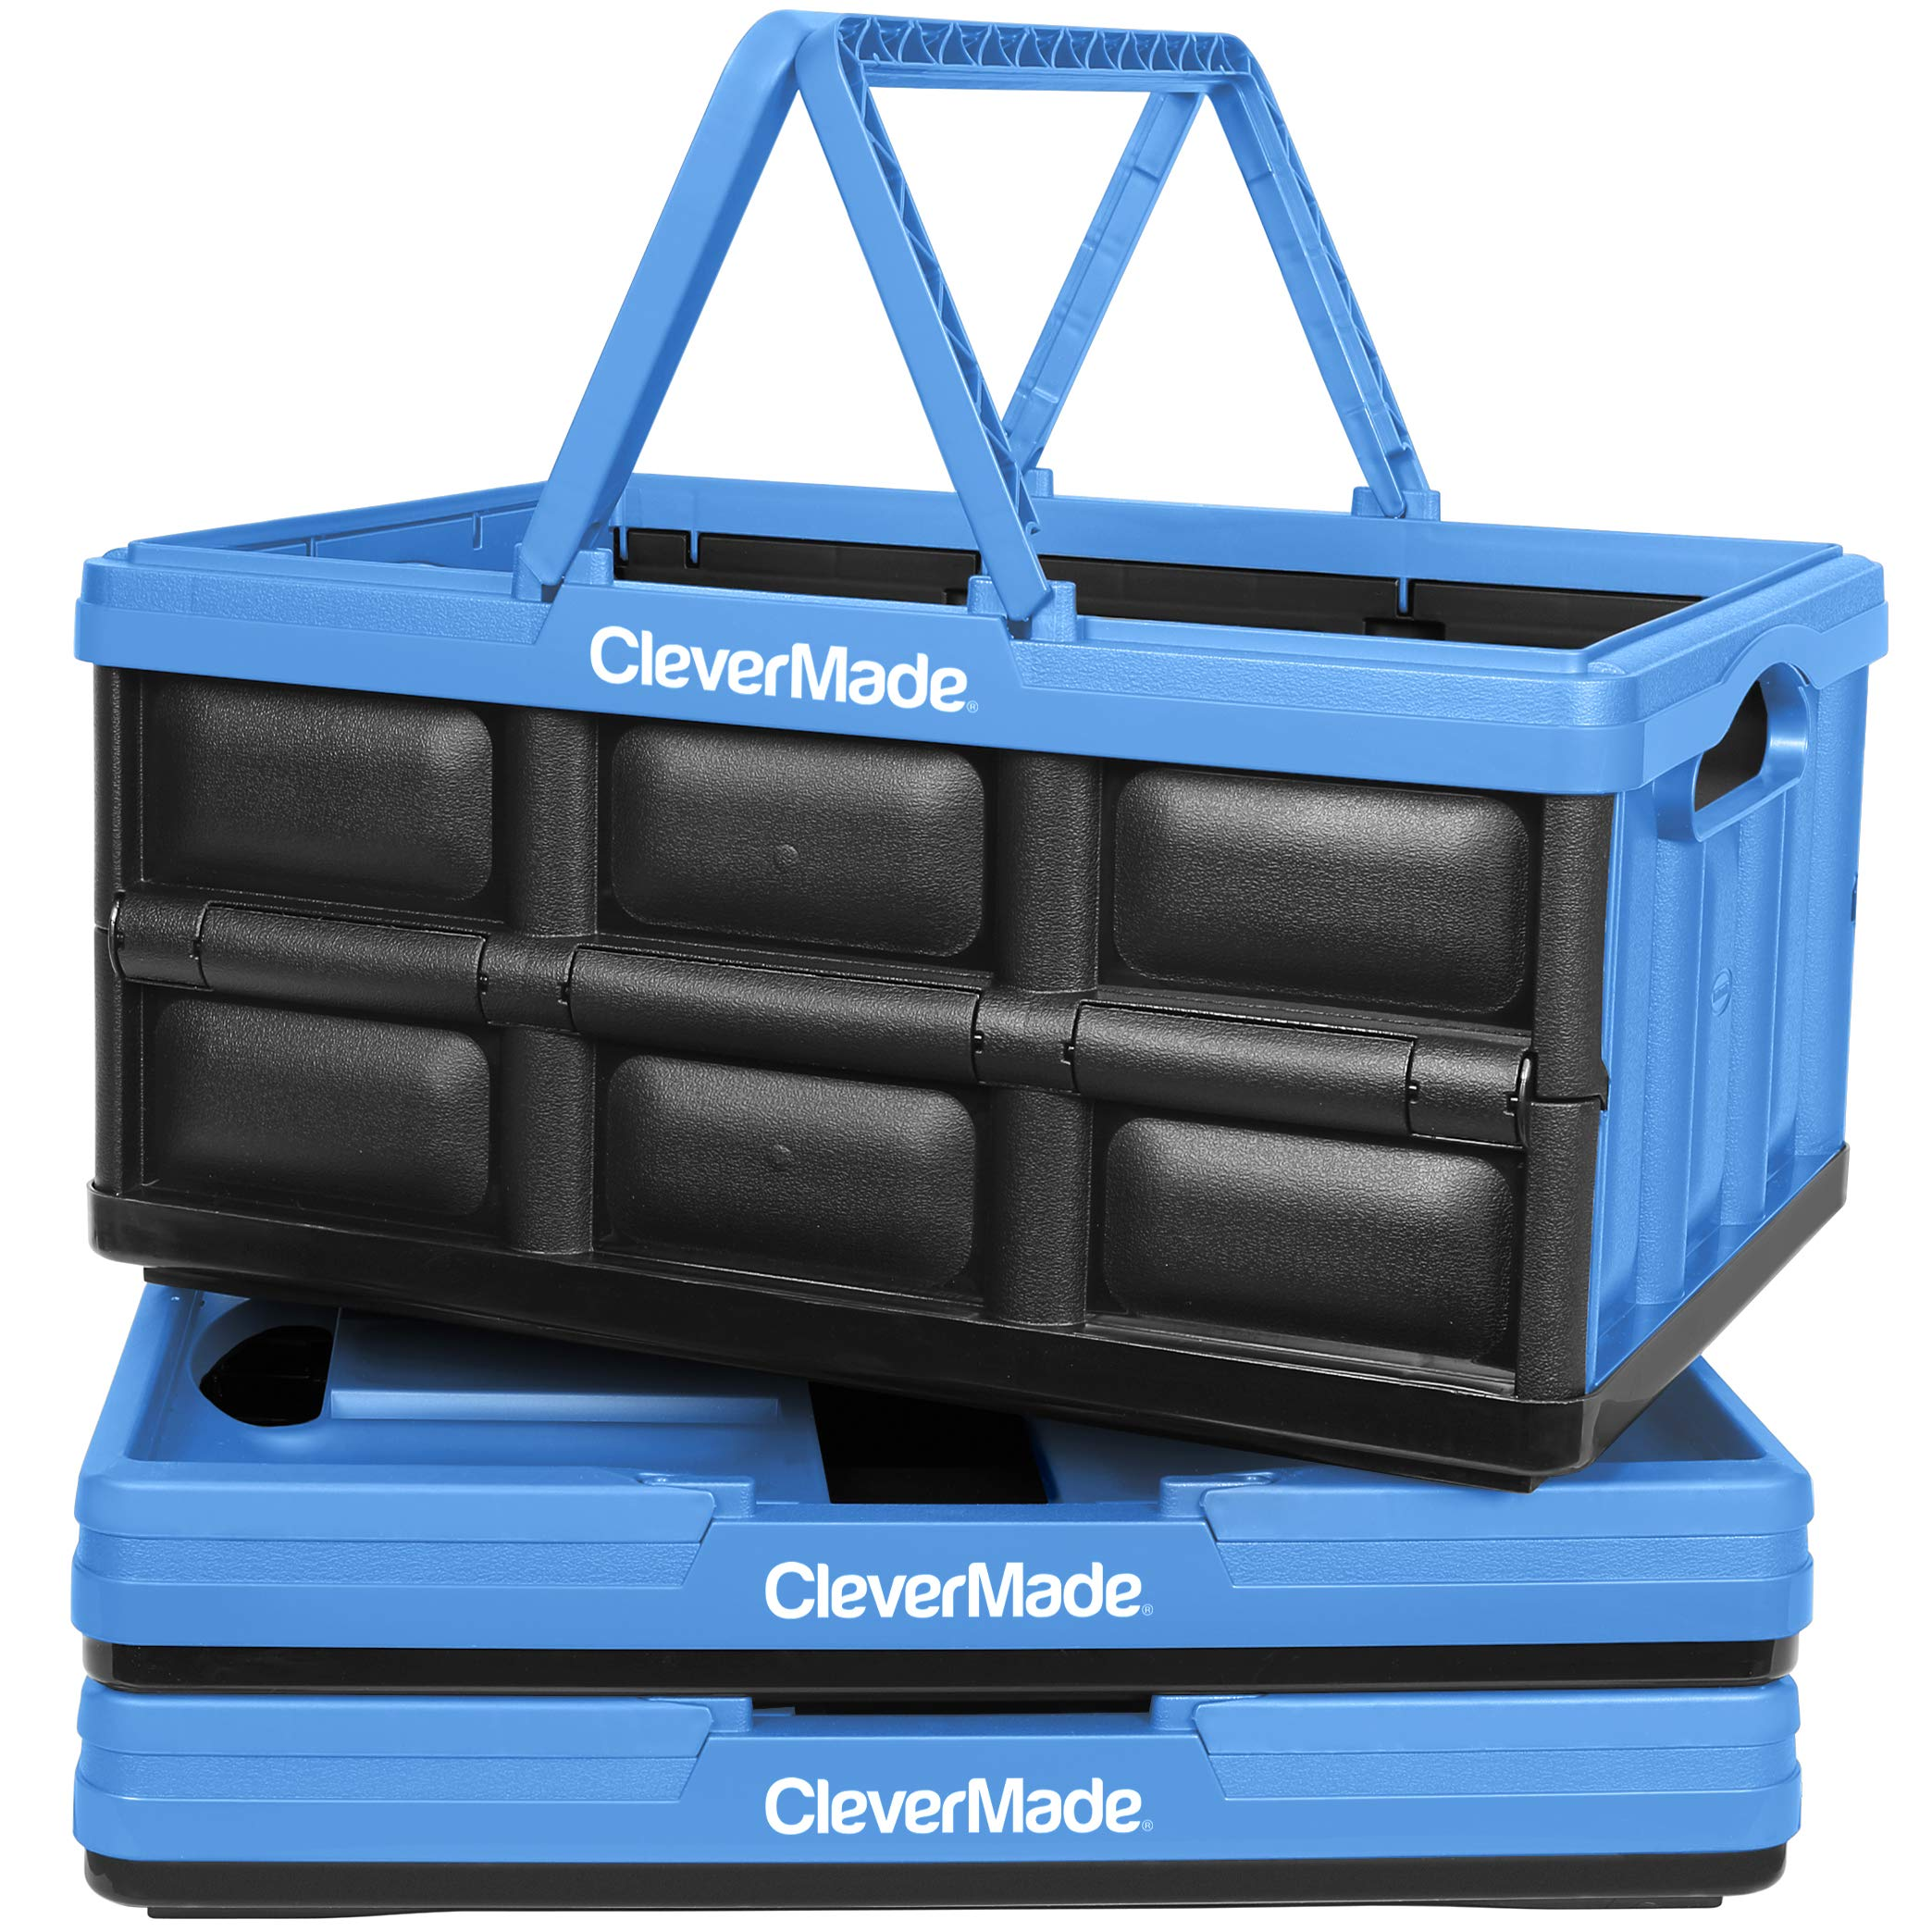 CleverMade Collapsible Plastic Storage Bins with Handles - Multi-Use Stackable Folding Crates for Home and Garage Organization - 32L CleverCrates - Pack of 3, Blue by CleverMade